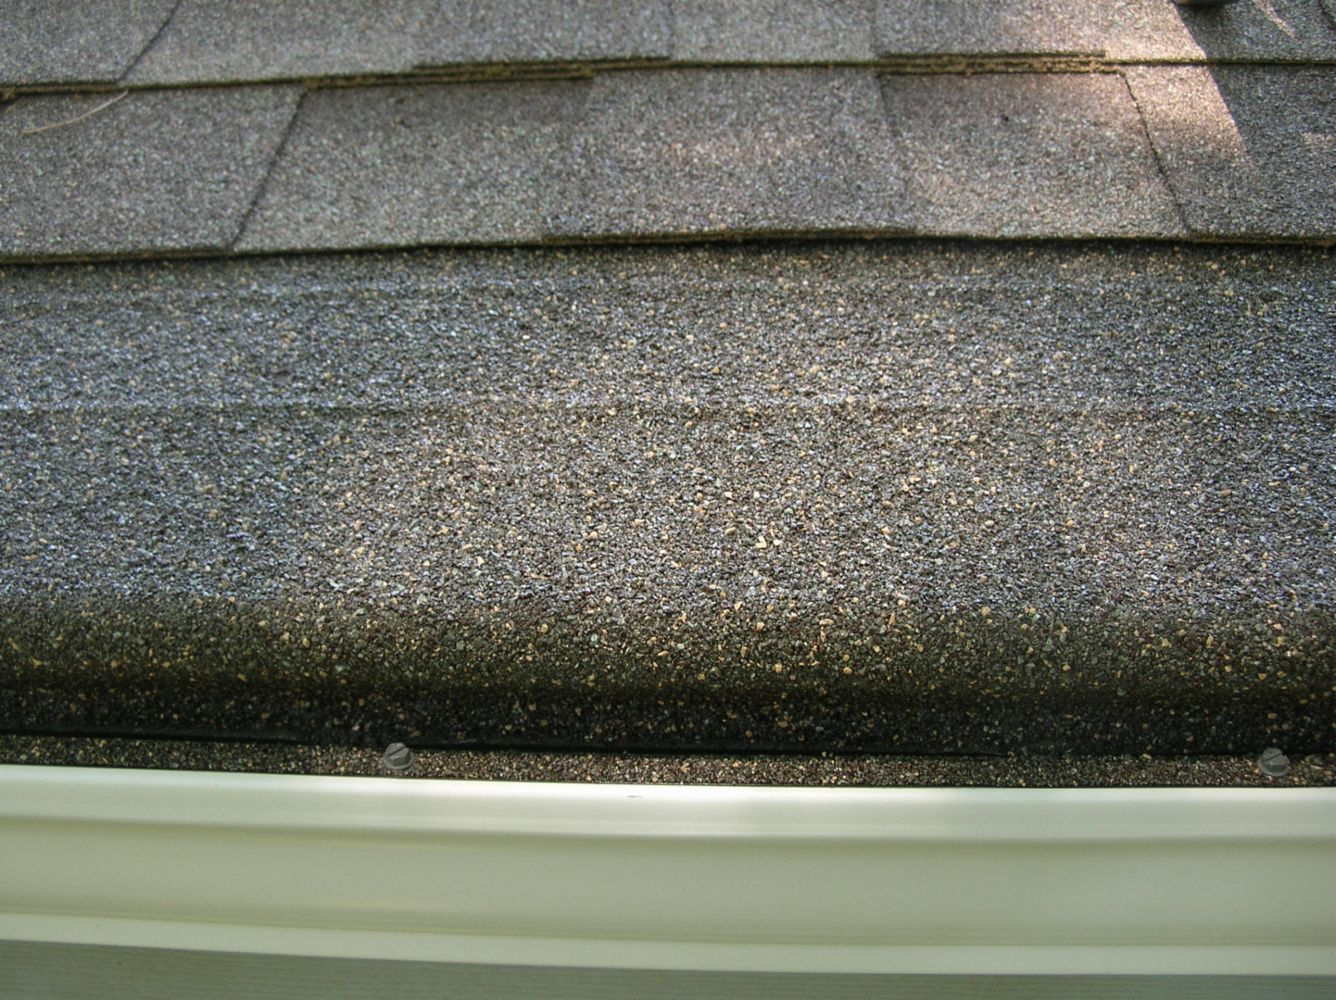 Gutter And Gutter Protection Experts In Gardner Ks Dynamic Gutter And Cover 913 279 8057